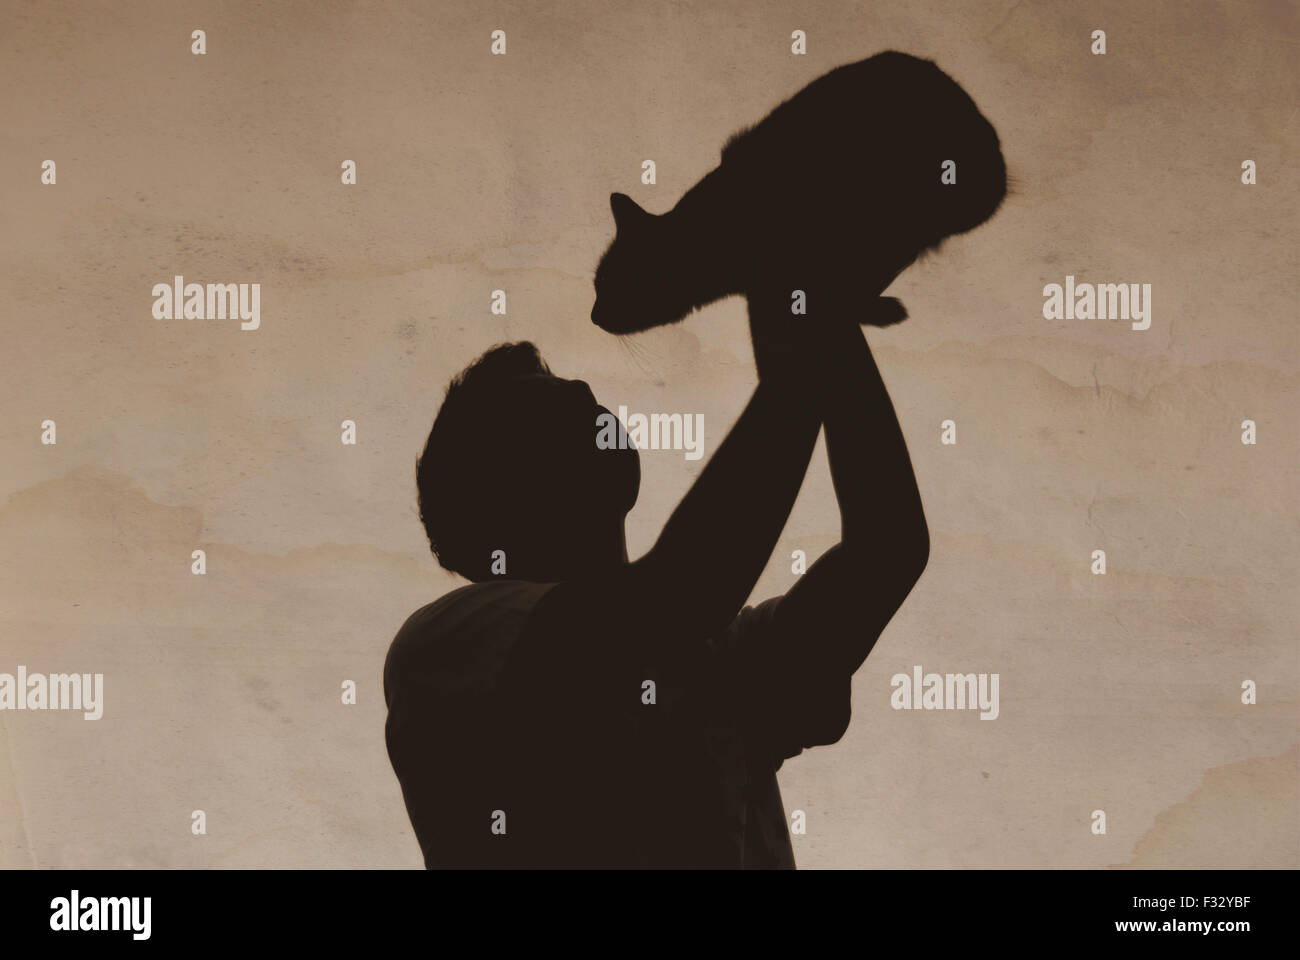 old photo boy with a cat shadows - Stock Image